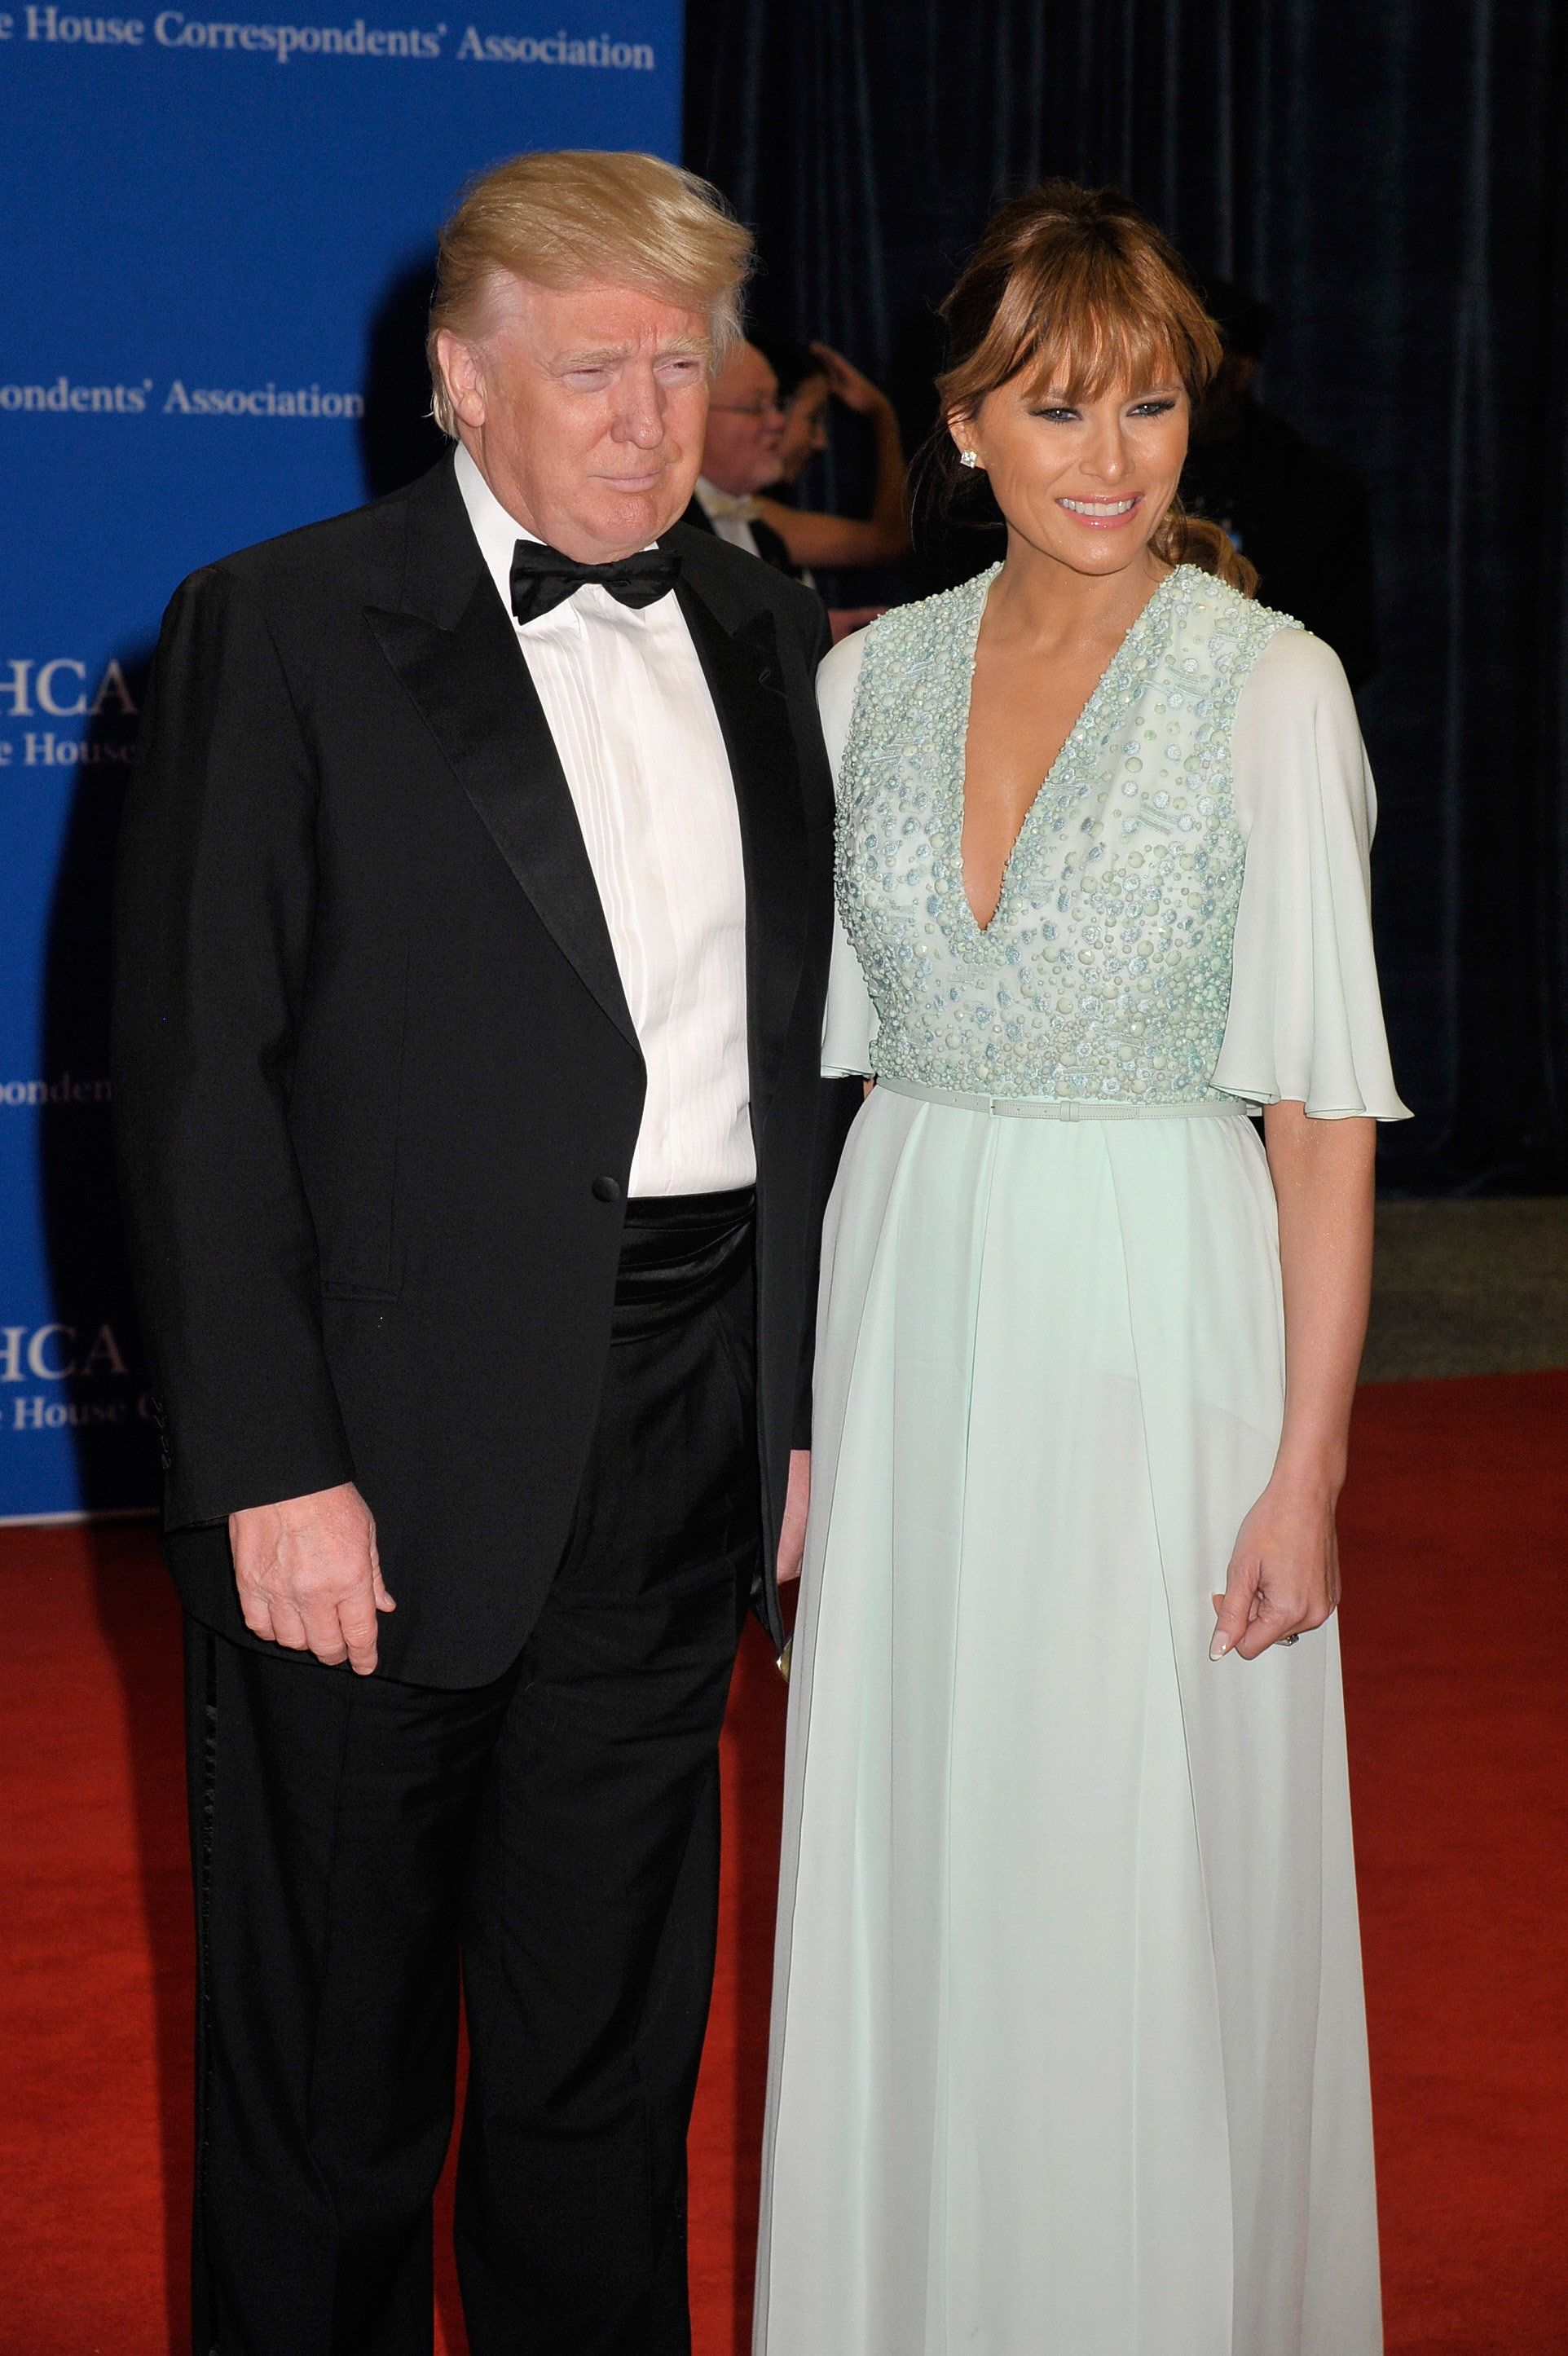 WASHINGTON, DC - APRIL 25:  Donald Trump and Melania Trump attend the 101st Annual White House Correspondents' Association Dinner at the Washington Hilton on April 25, 2015 in Washington, DC.  (Photo by Kris Connor/FilmMagic)